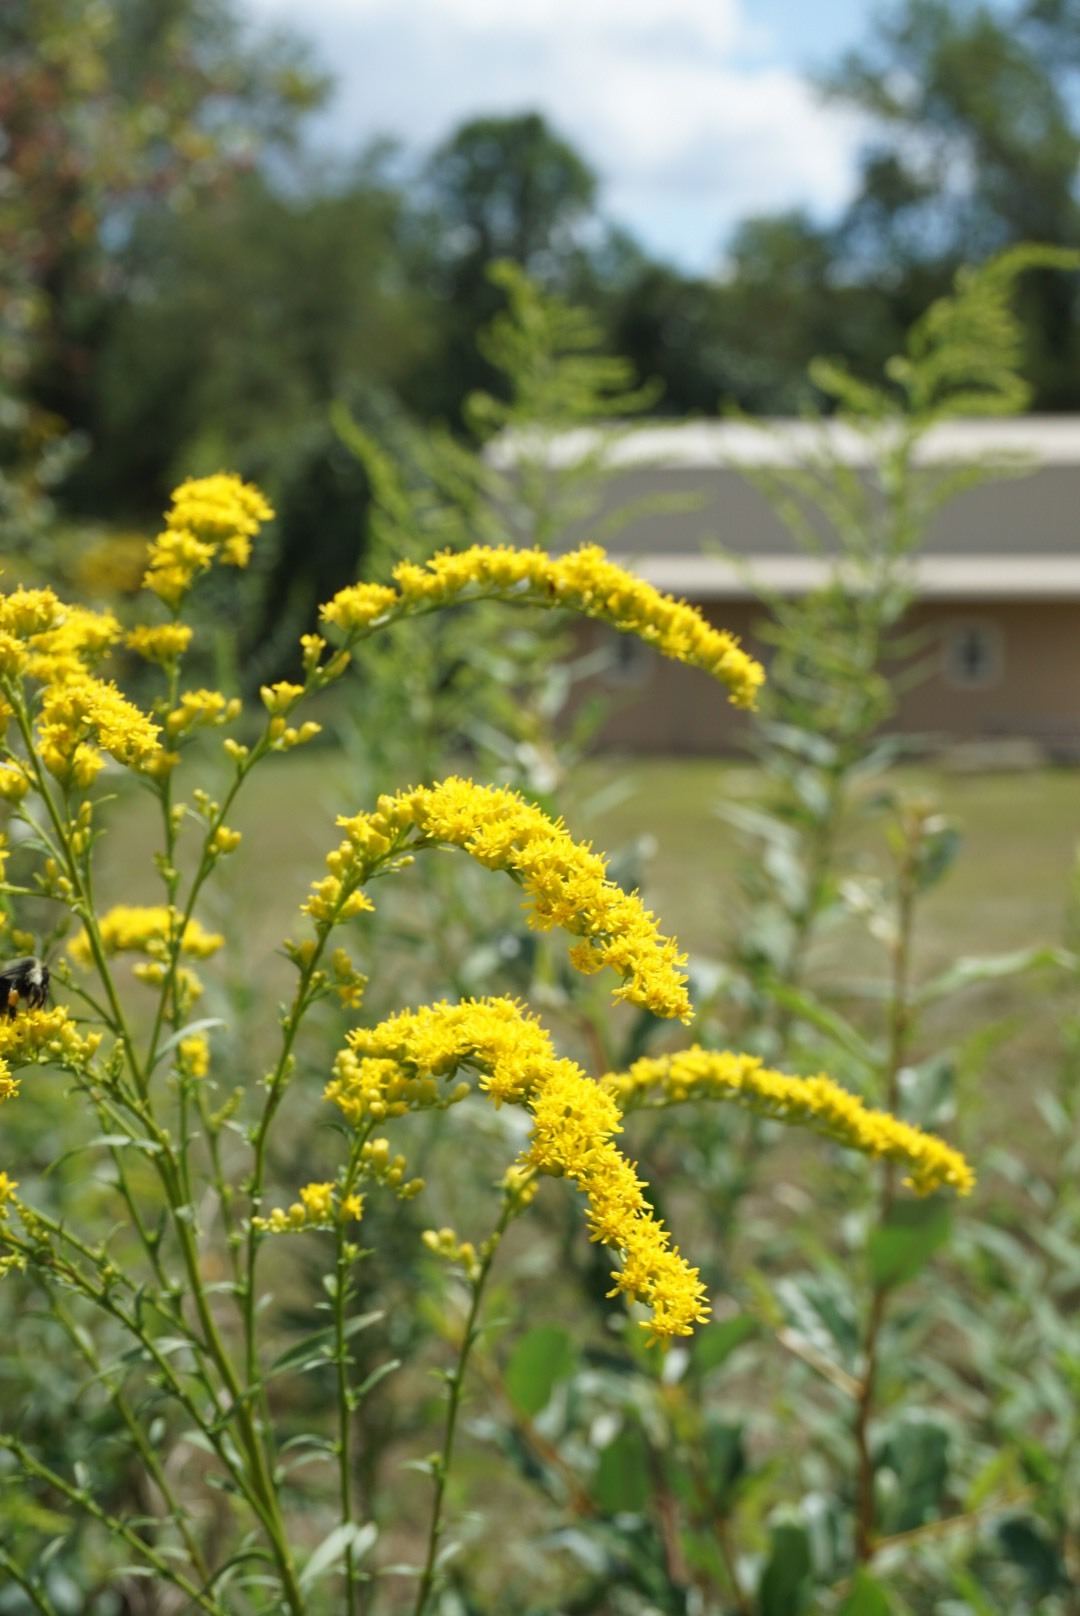 Goldenrod, solidago spp - A complete in-depth look into the herbal ally, Goldenrod.